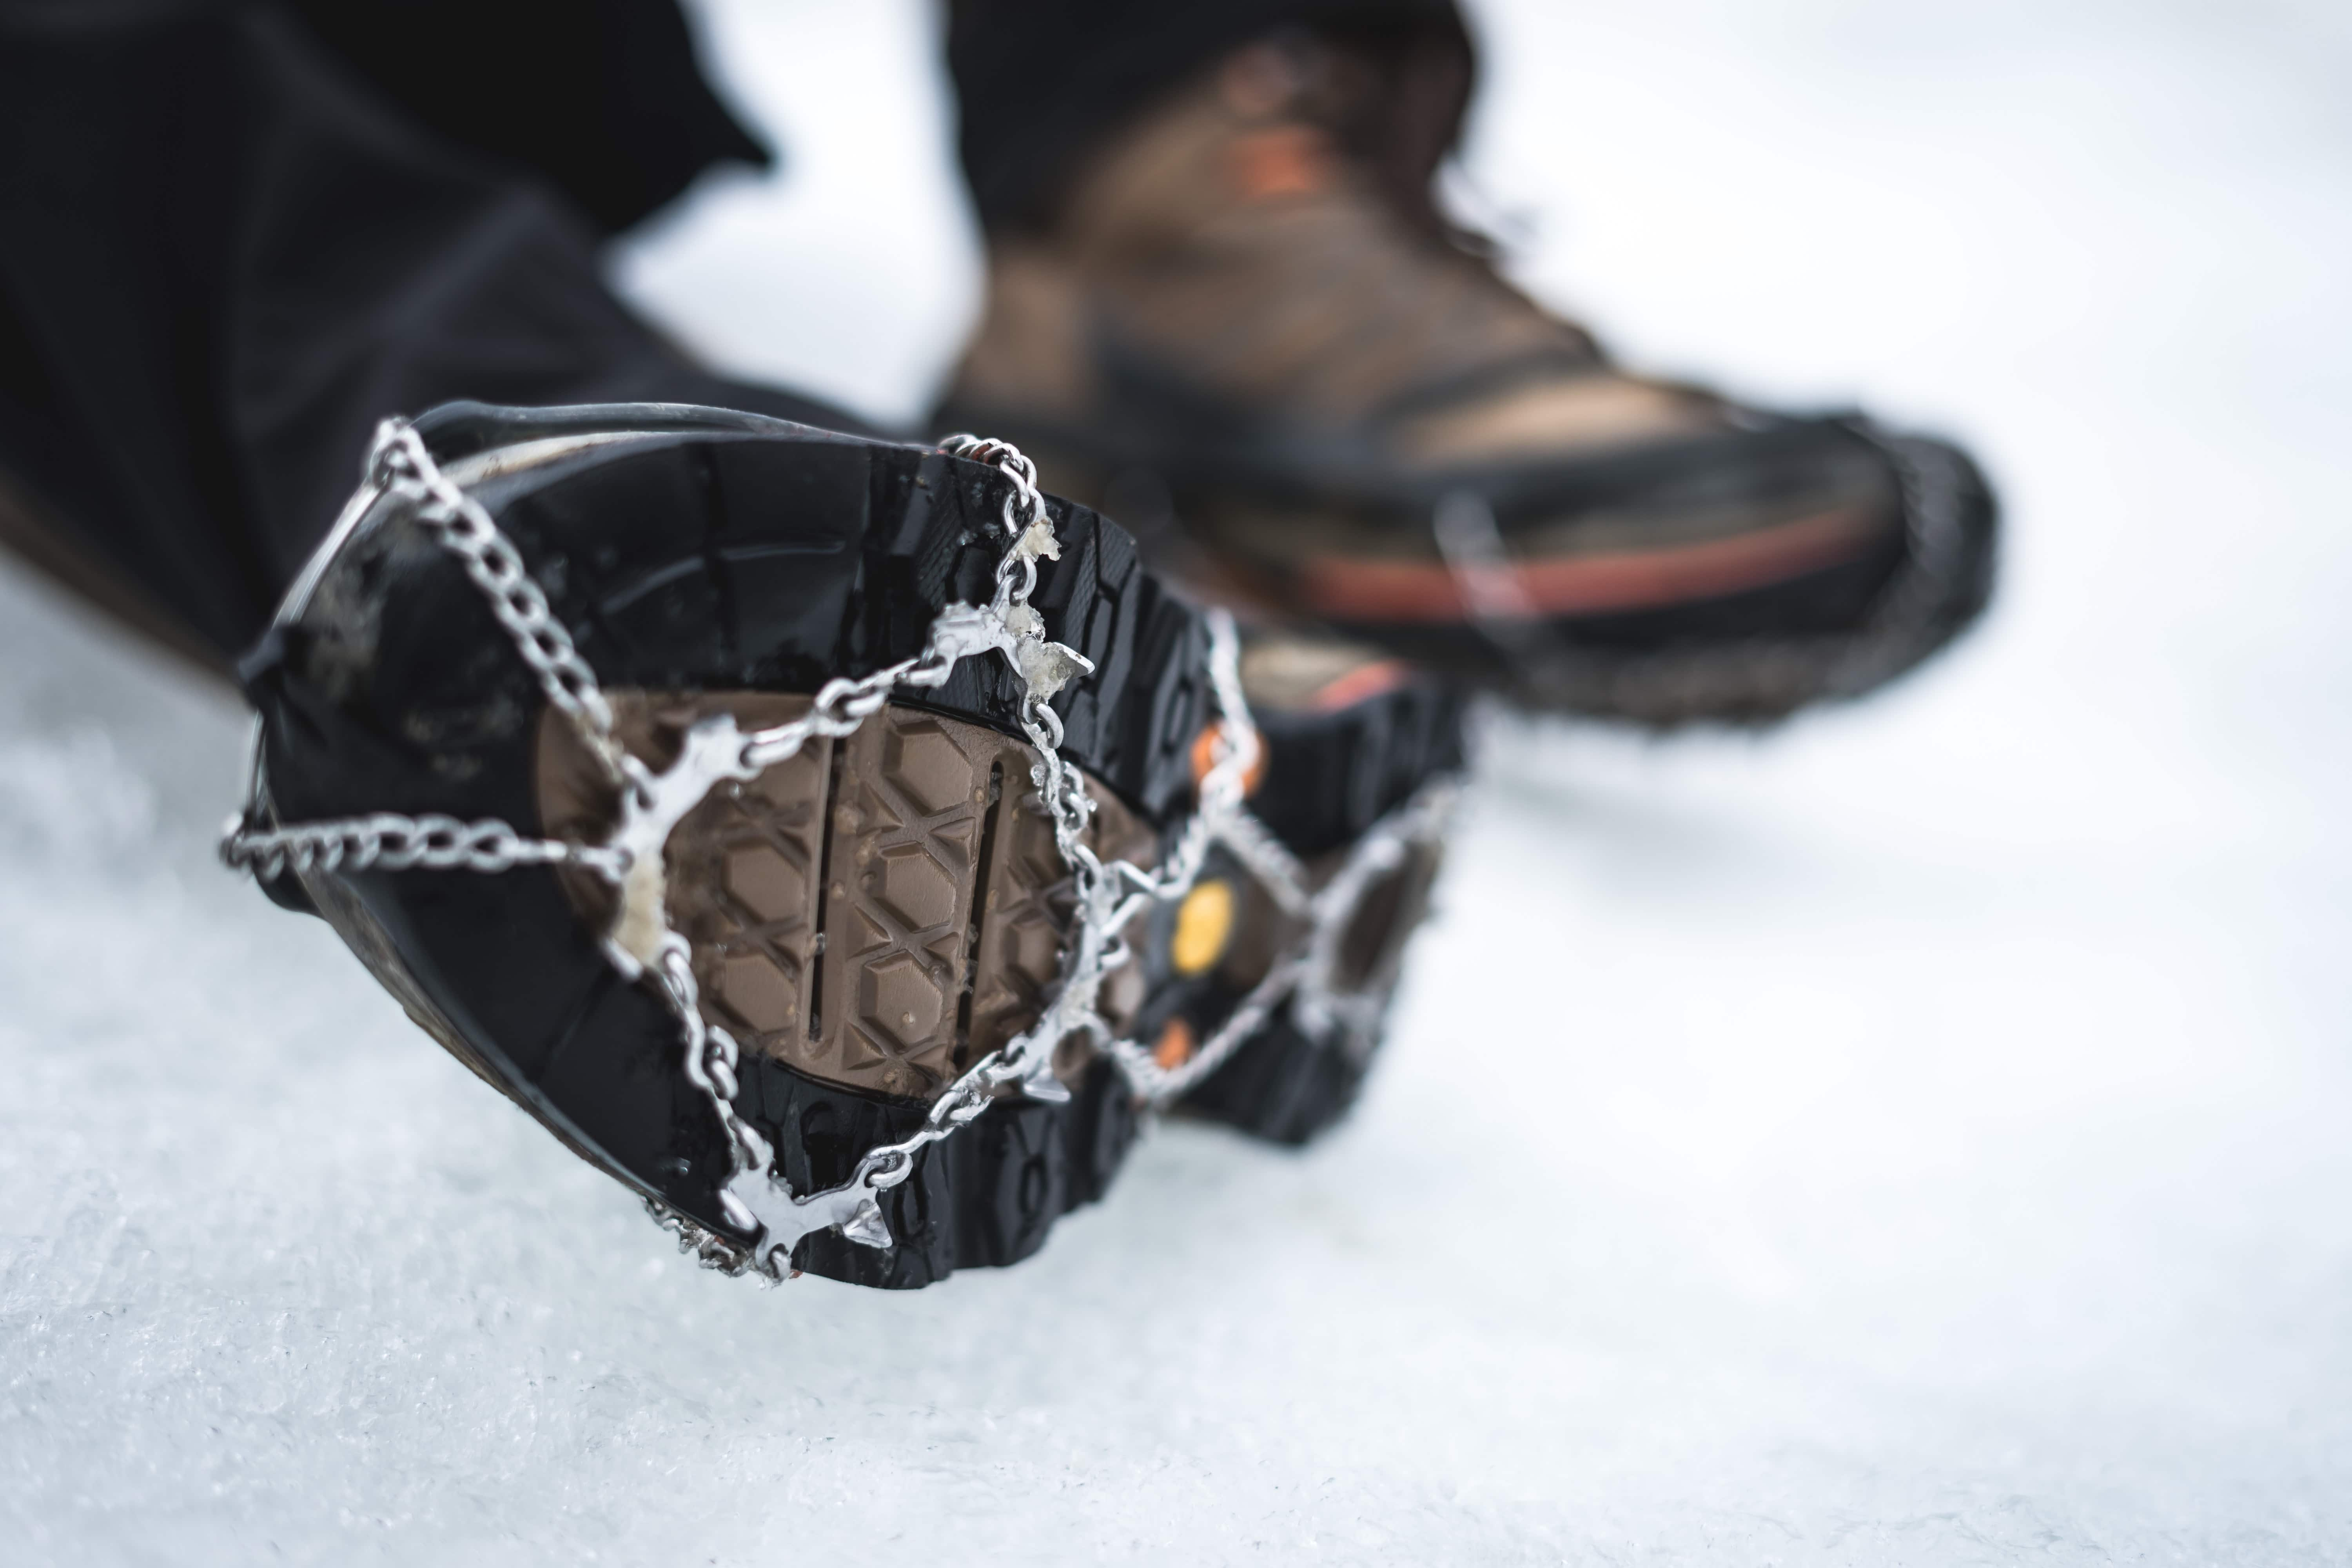 The 10 Best Ice Cleats for Hiking You